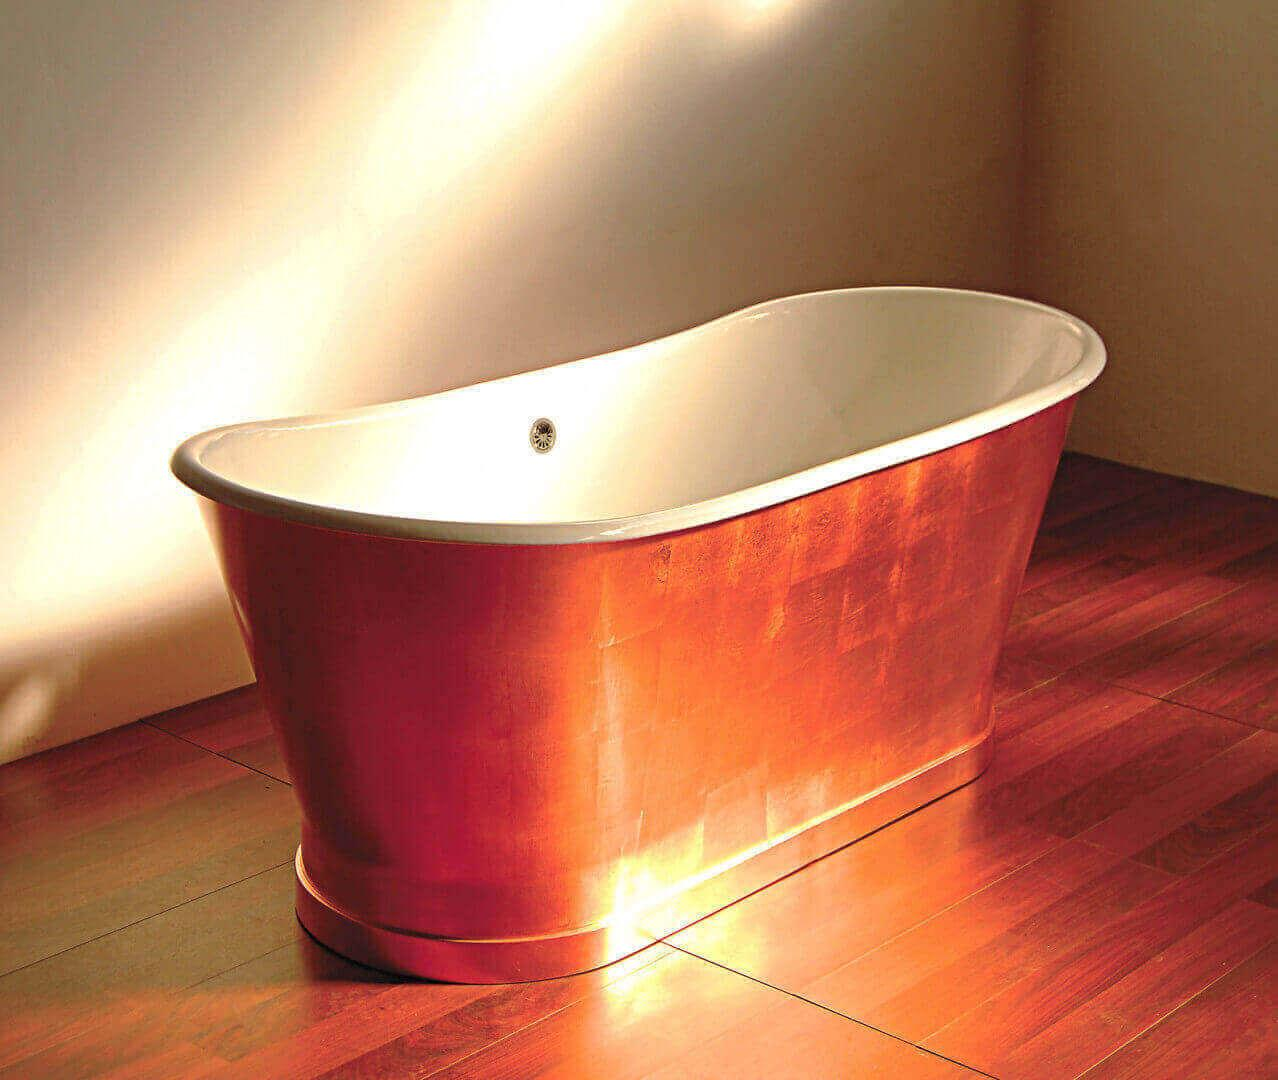 Kallista Archeo Copper Bathtub (£52,750)